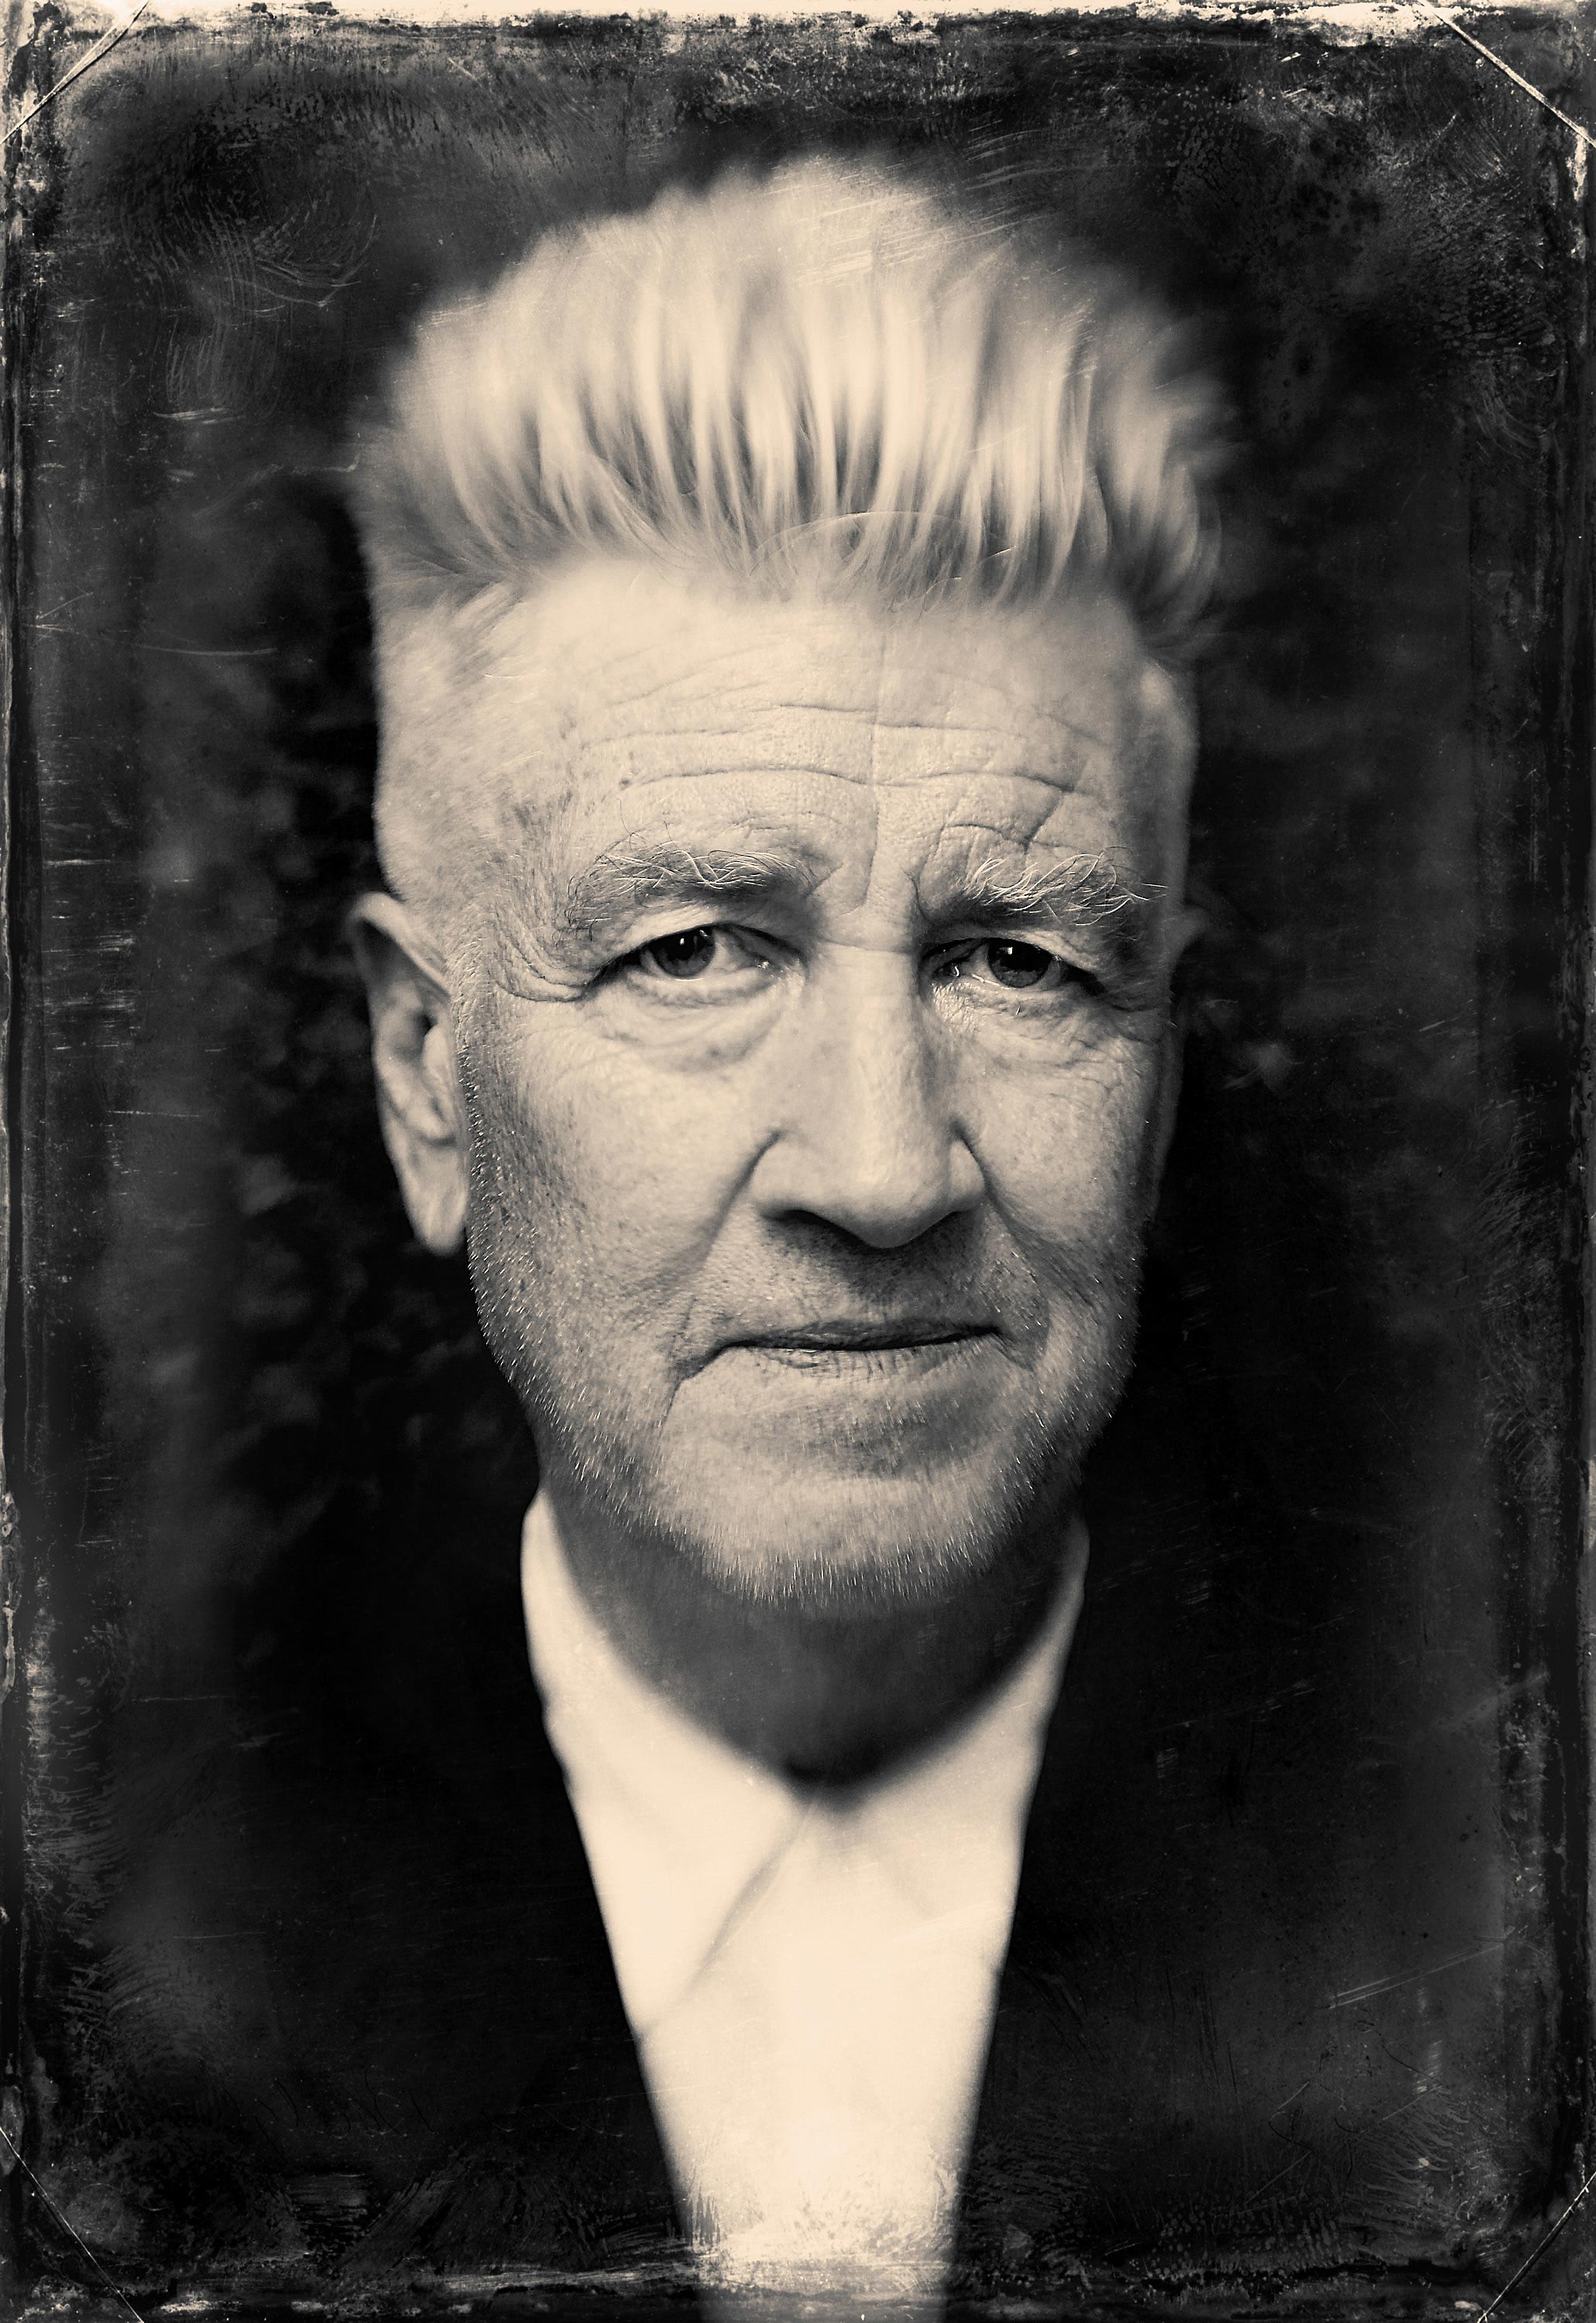 7 Art Cinema | David Lynch | Informations, Movies, Trailers, Photos, Filmography, American film director, screenwriter, composer | 1977 Eraserhead, 1980 The Elephant Man, 1984 Dune, 1986 Blue Velvet, 1990 Wild at Heart, 1992 Twin Peaks : Fire Walk with Me, 1997 Lost Highway, 1999 The Straight Story, 2001 Mulholland Drive, 2006 Inland Empire | David Keith Lynch (born January 20, 1946) is an American film director, television director, visual artist, musician, actor, and author | Photograph